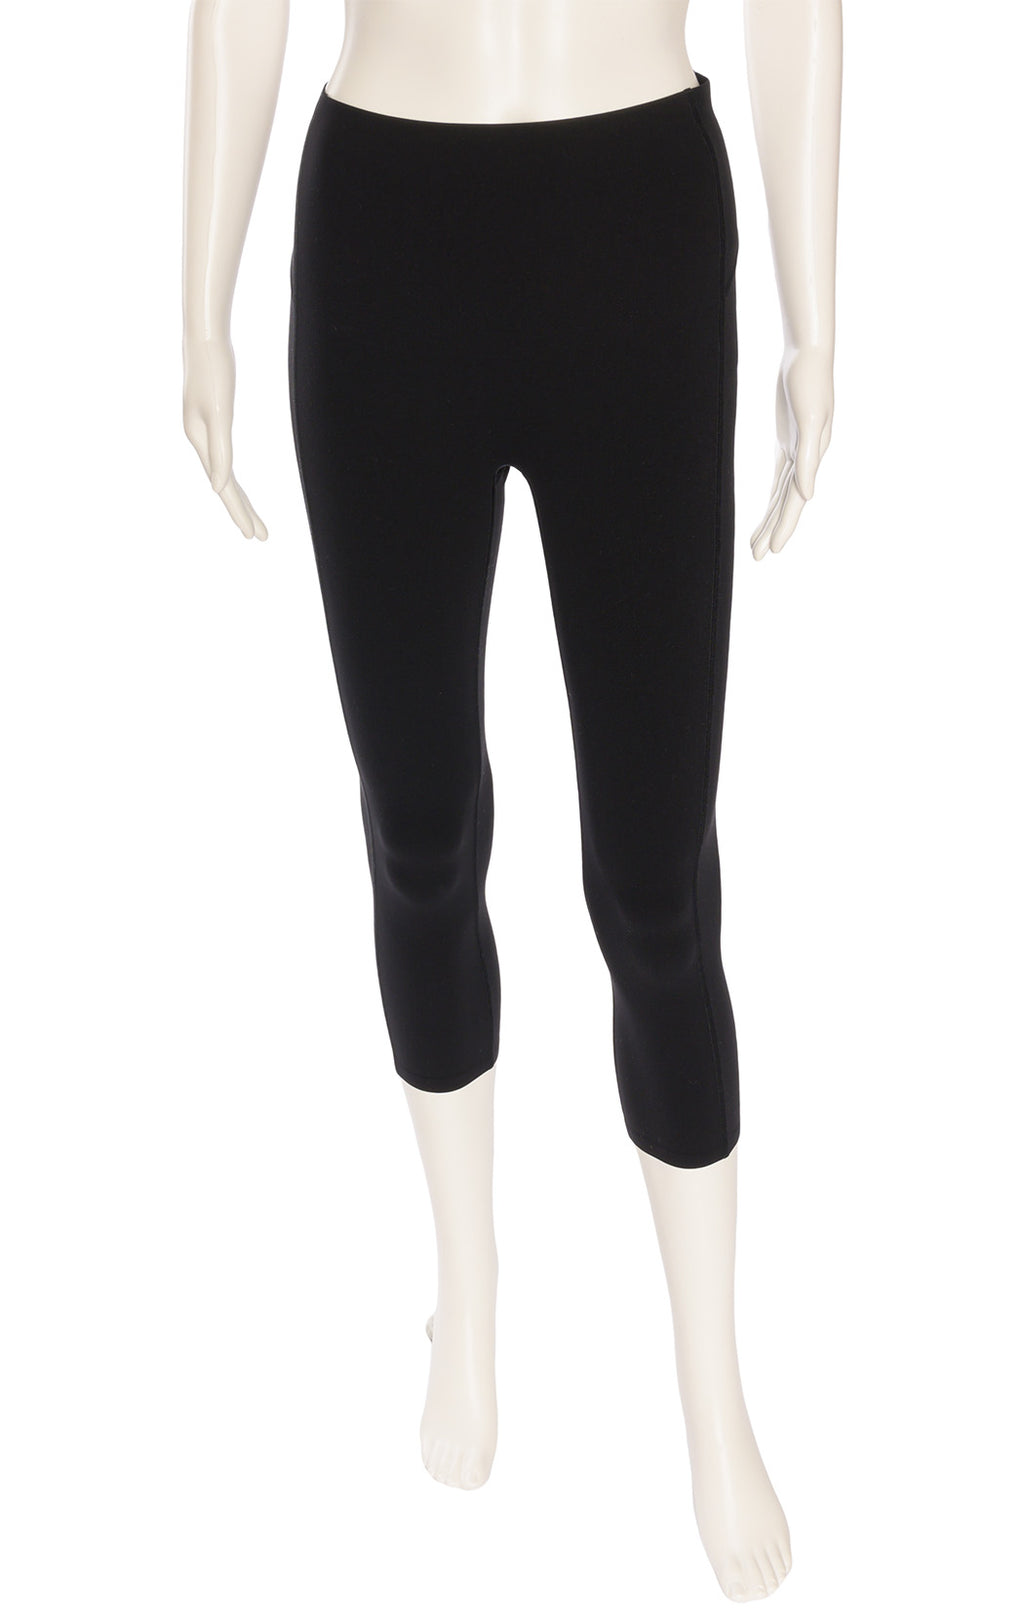 Black capri length Shape wear